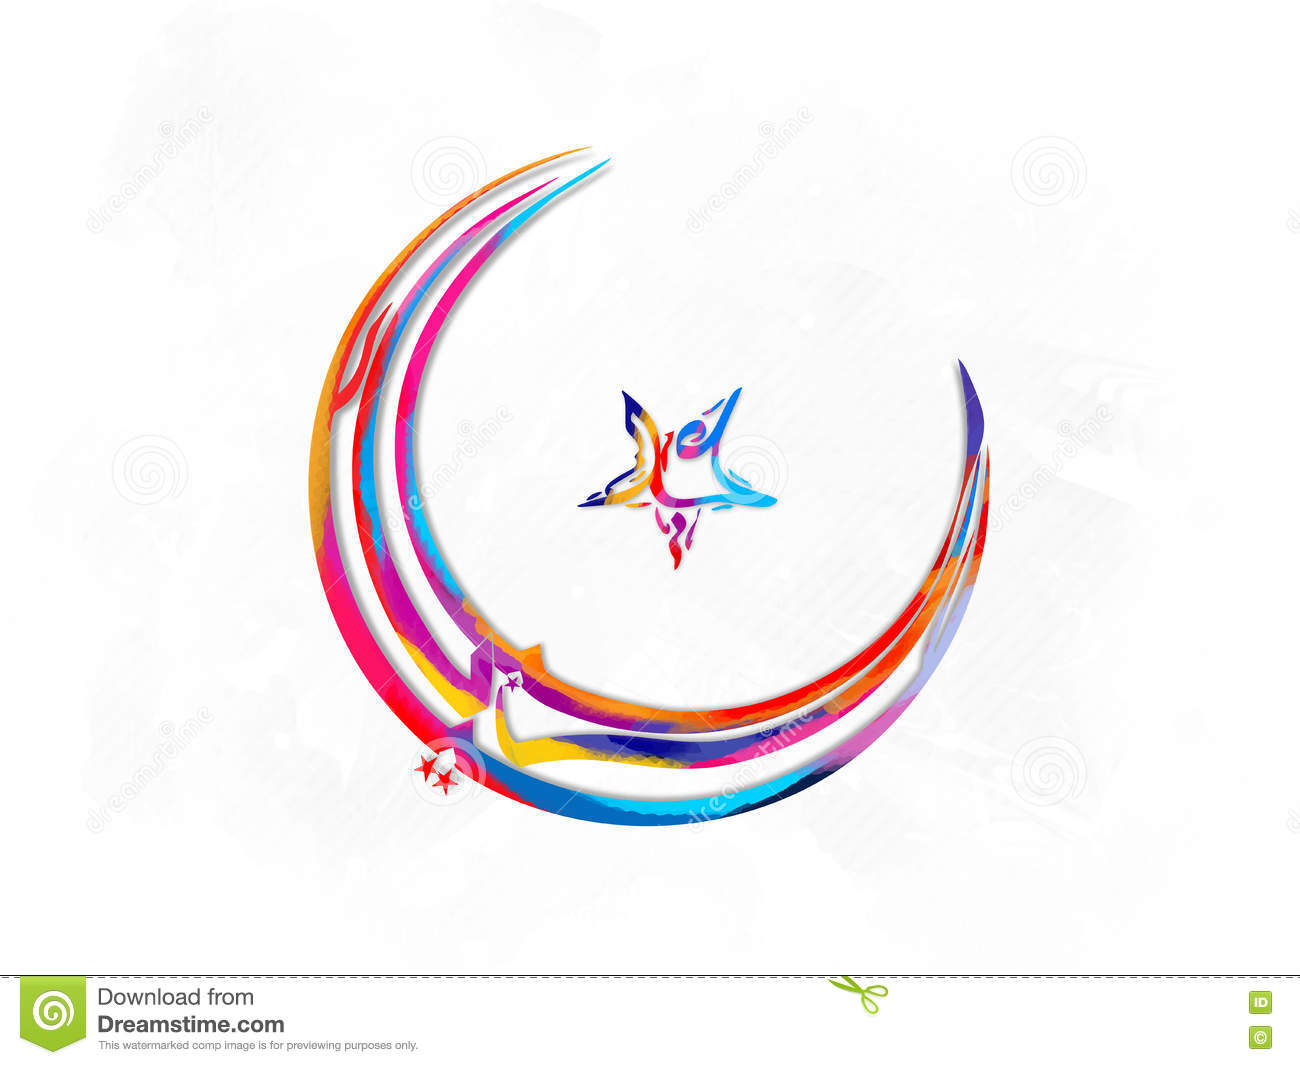 Colourful arabic text for eid celebration stock illustration colourful arabic text for eid celebration biocorpaavc Gallery